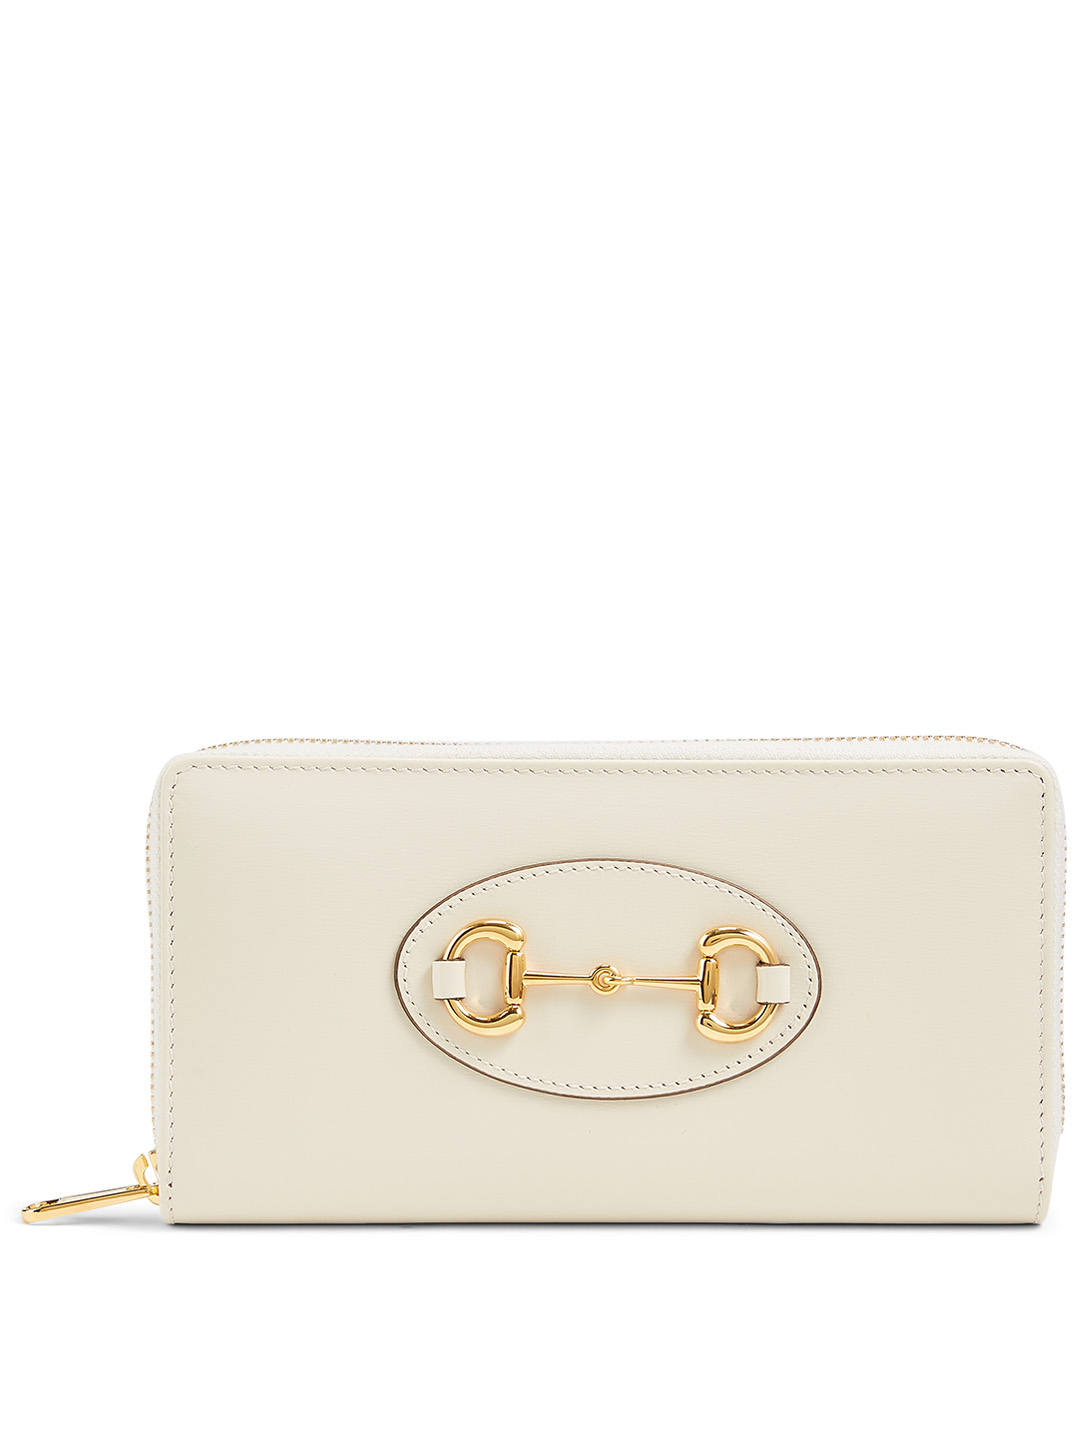 GUCCI Gucci 1955 Horsebit Leather Zip-Around Wallet Women's White